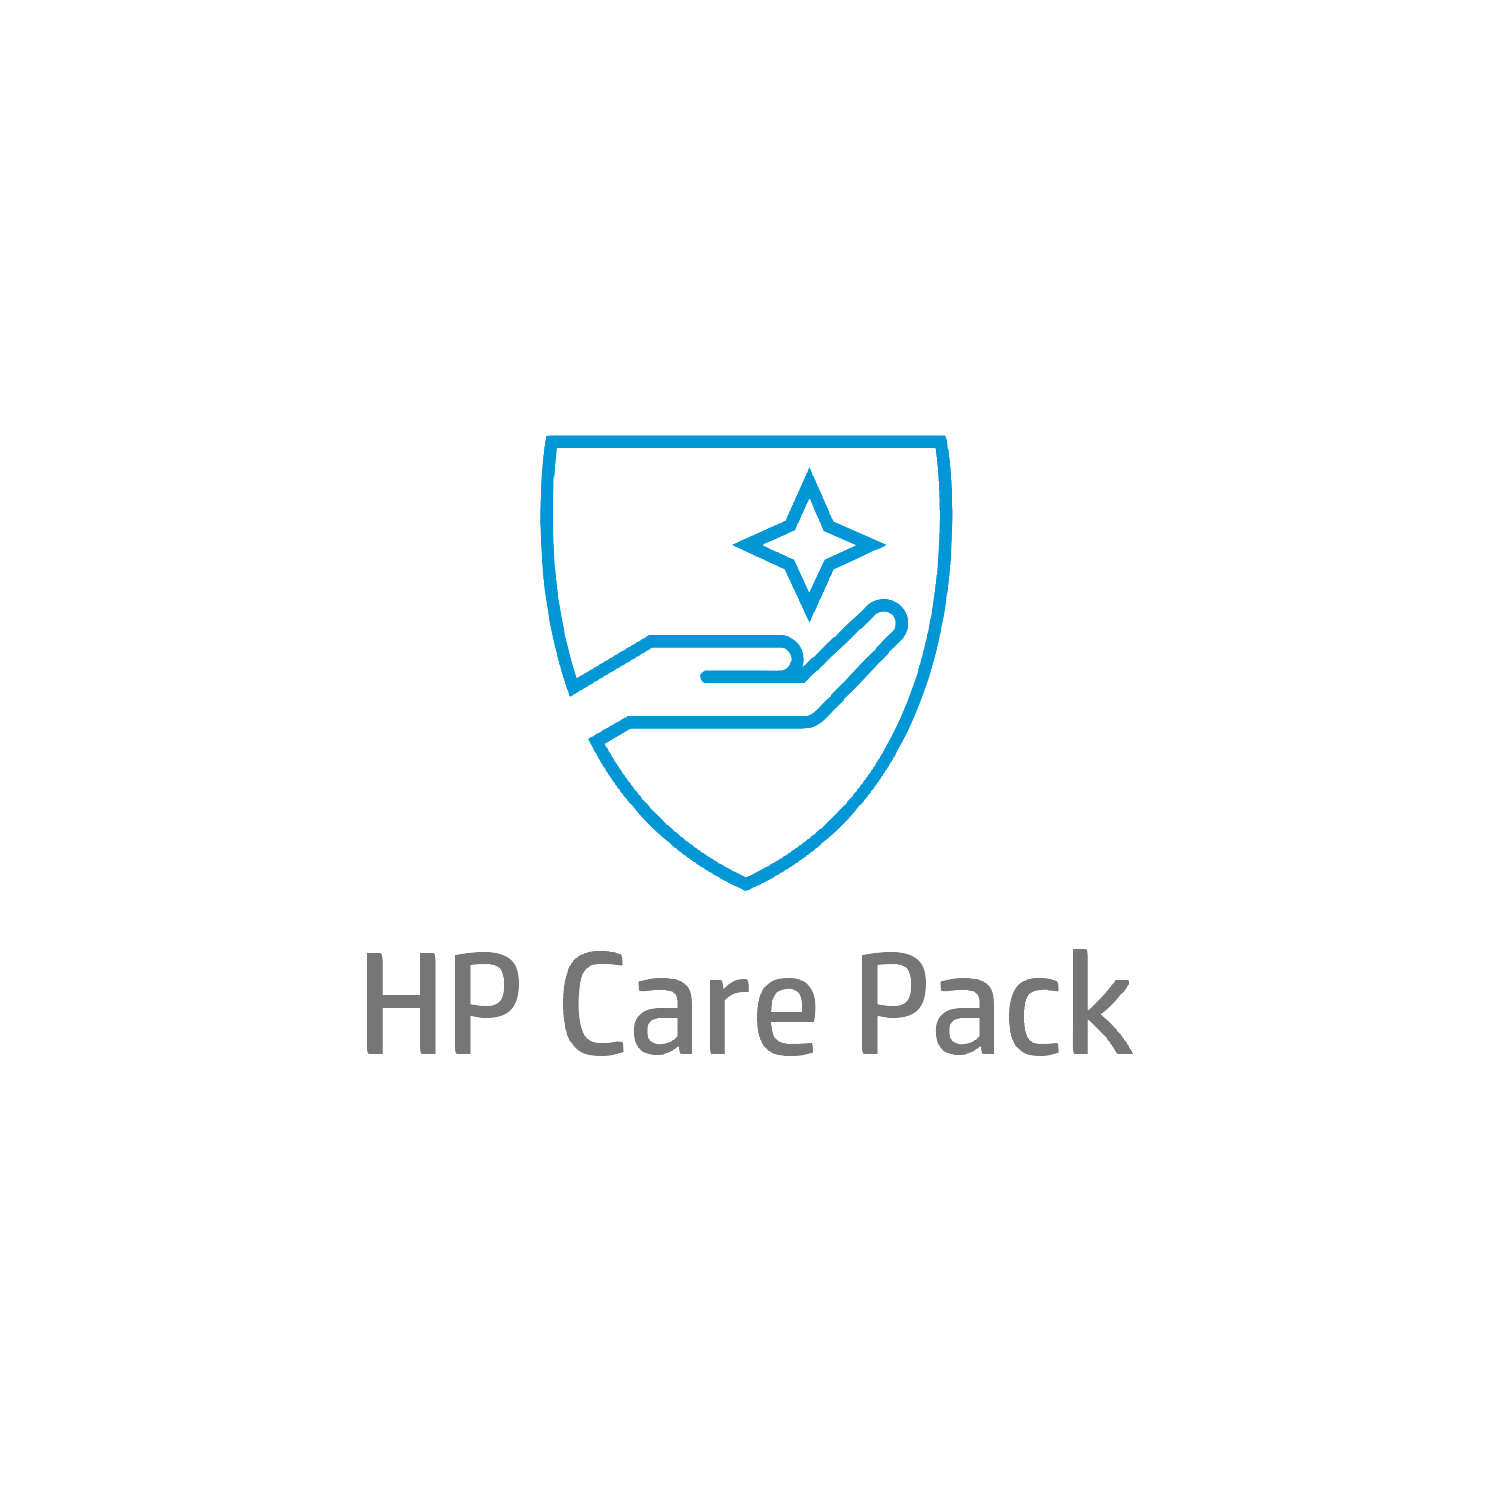 Electronic HP Care Pack Software Technical Support - Technical Support - For HP Imaging And Printing Security Center - 50 Devices - Phone Consulting - 3 Years - 9x5 - For JetAdvantage Securit - C2000